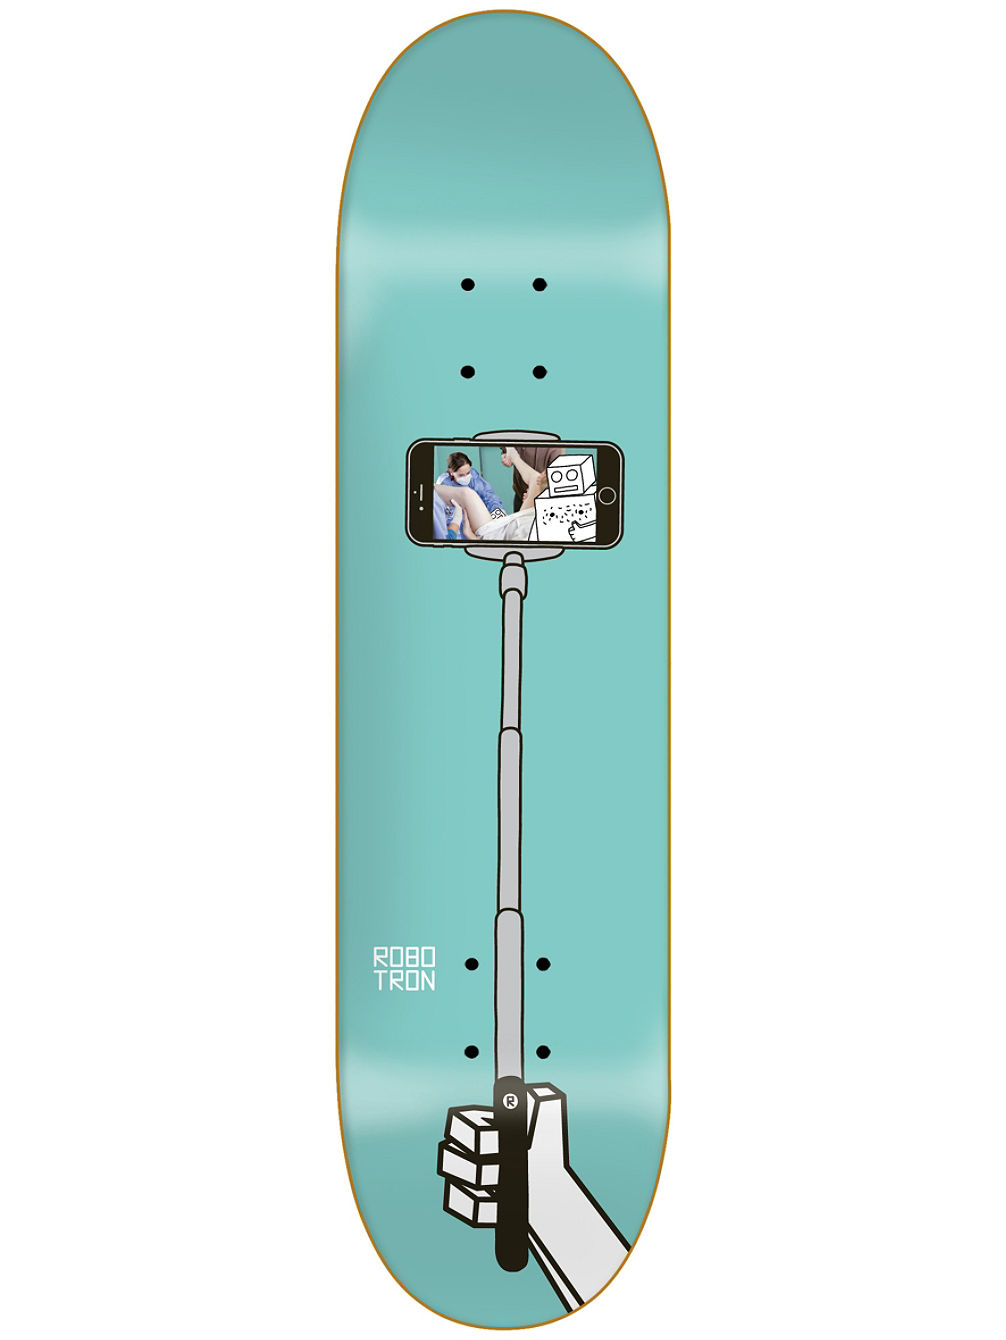 Selfie Stick Happy Birthday 8.3'' Skate Deck